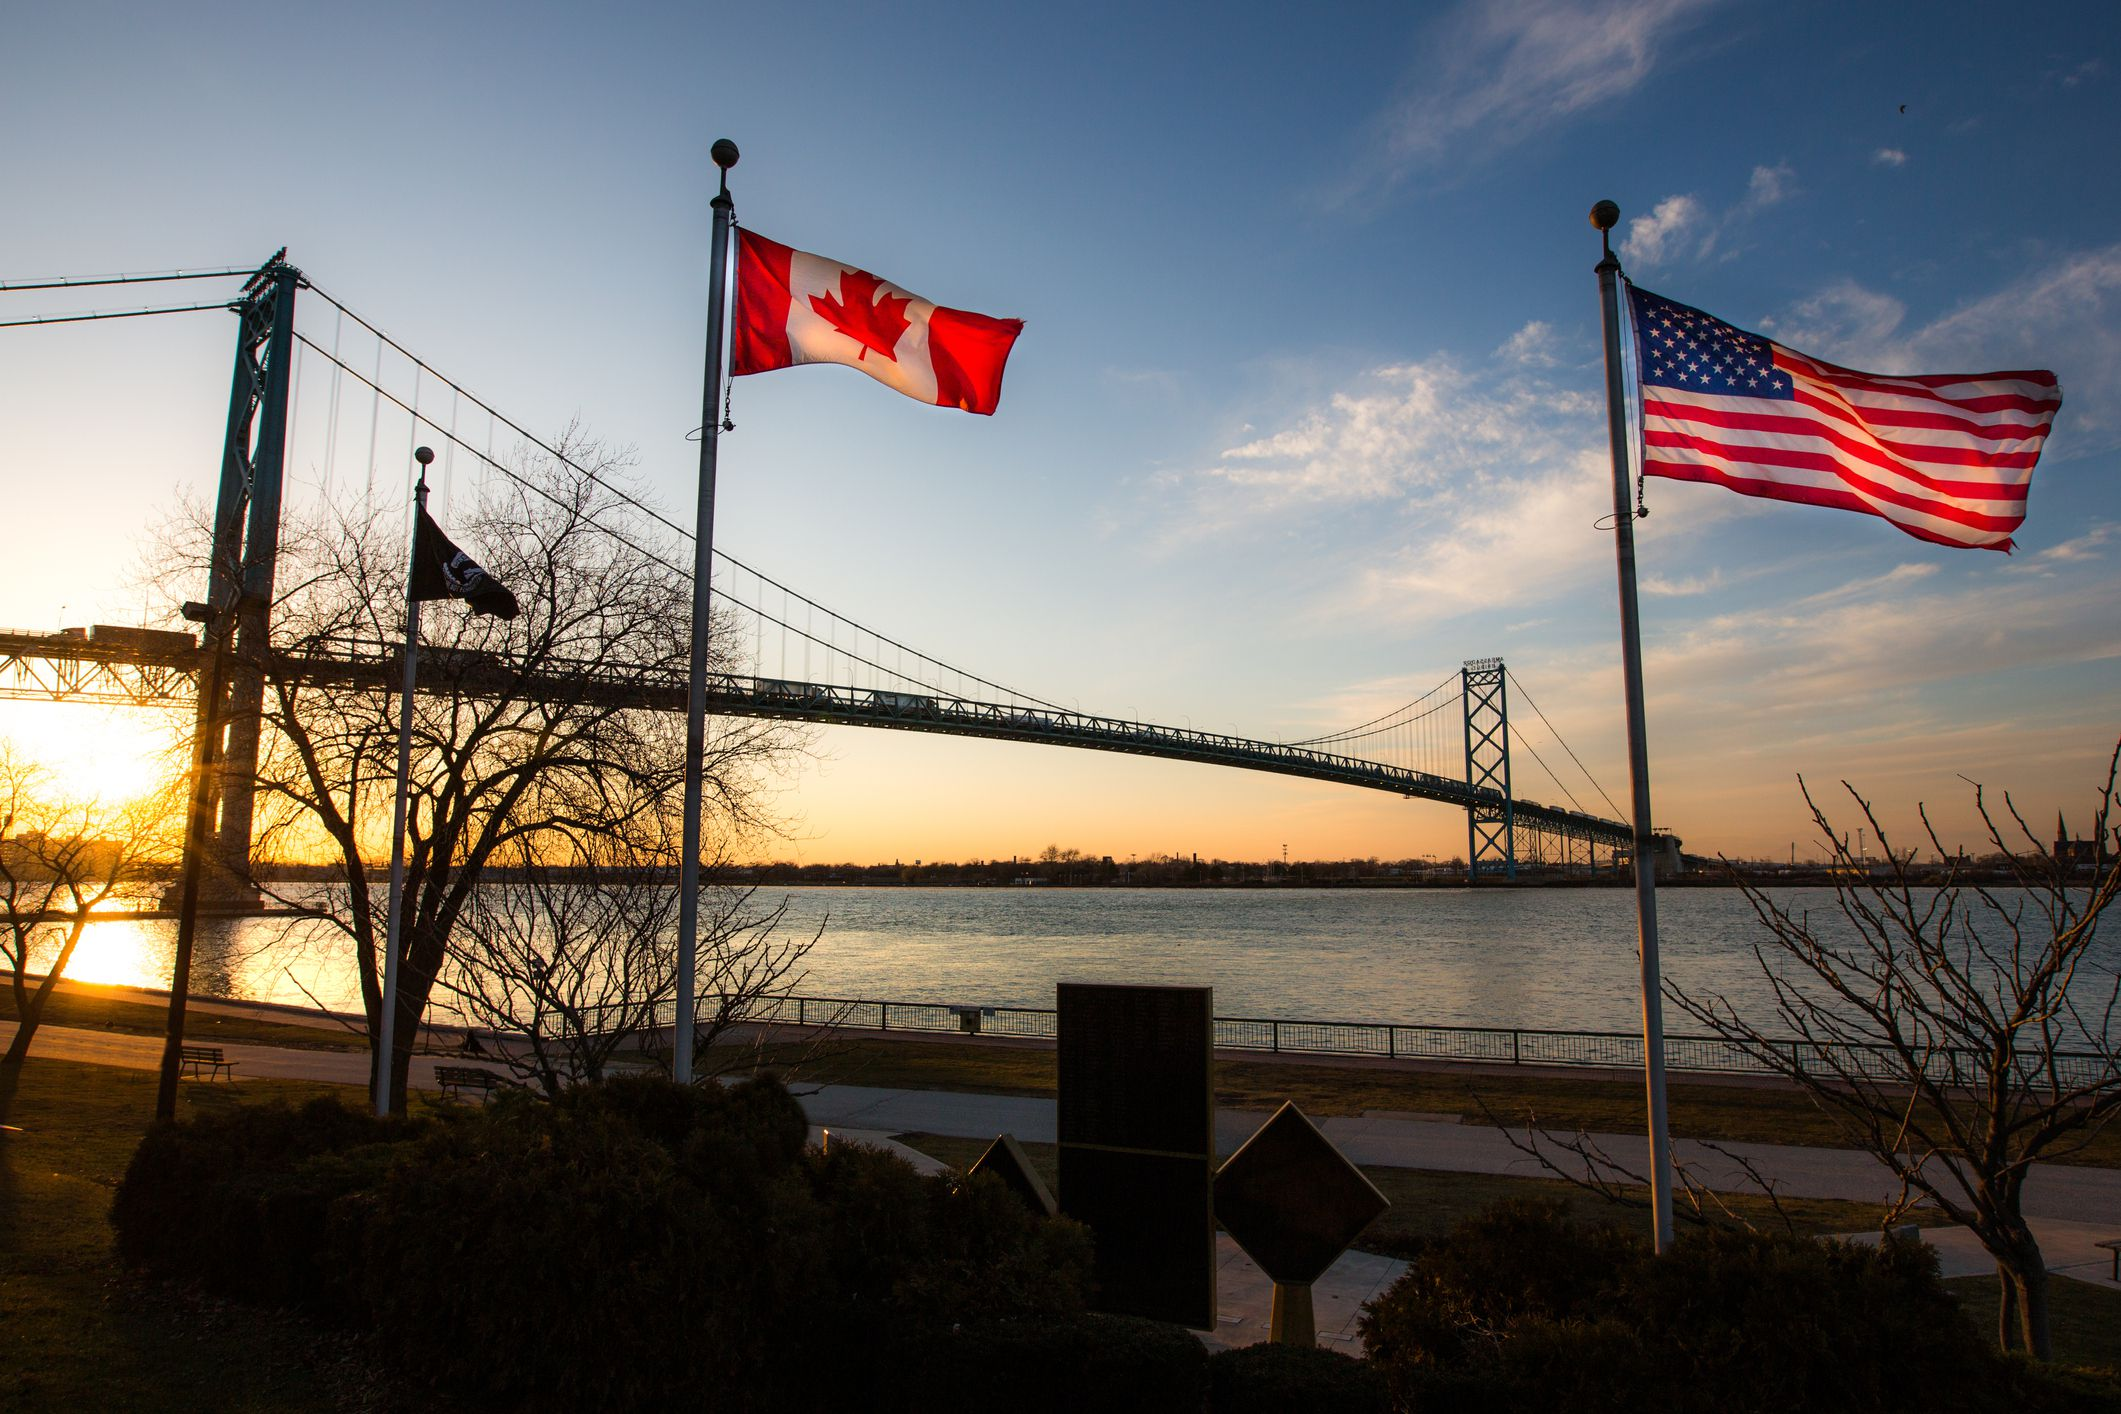 Common Questions About Crossing the Canada Border